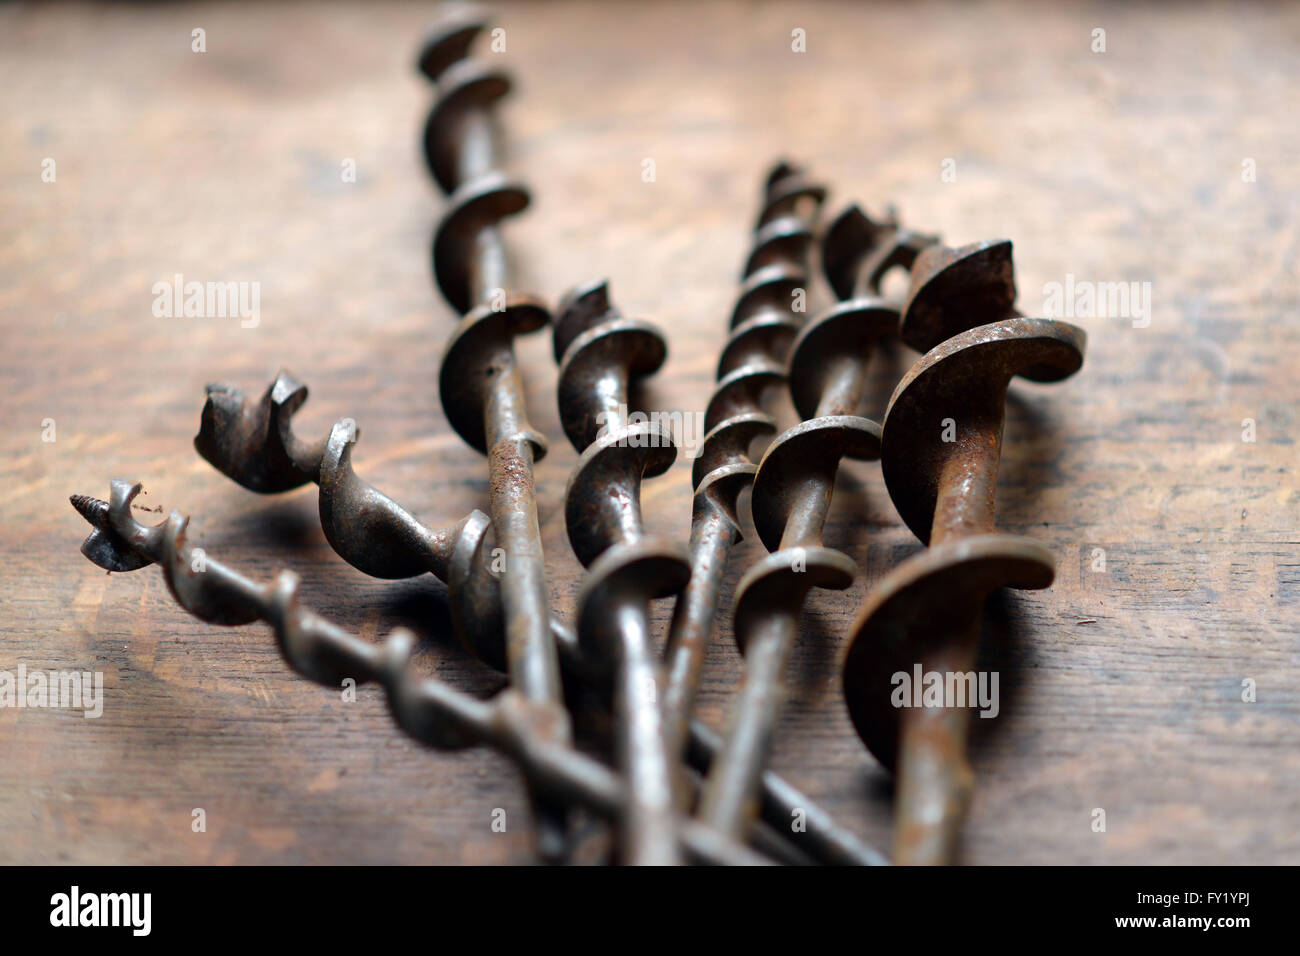 Vintage rusty drill bits - Stock Image